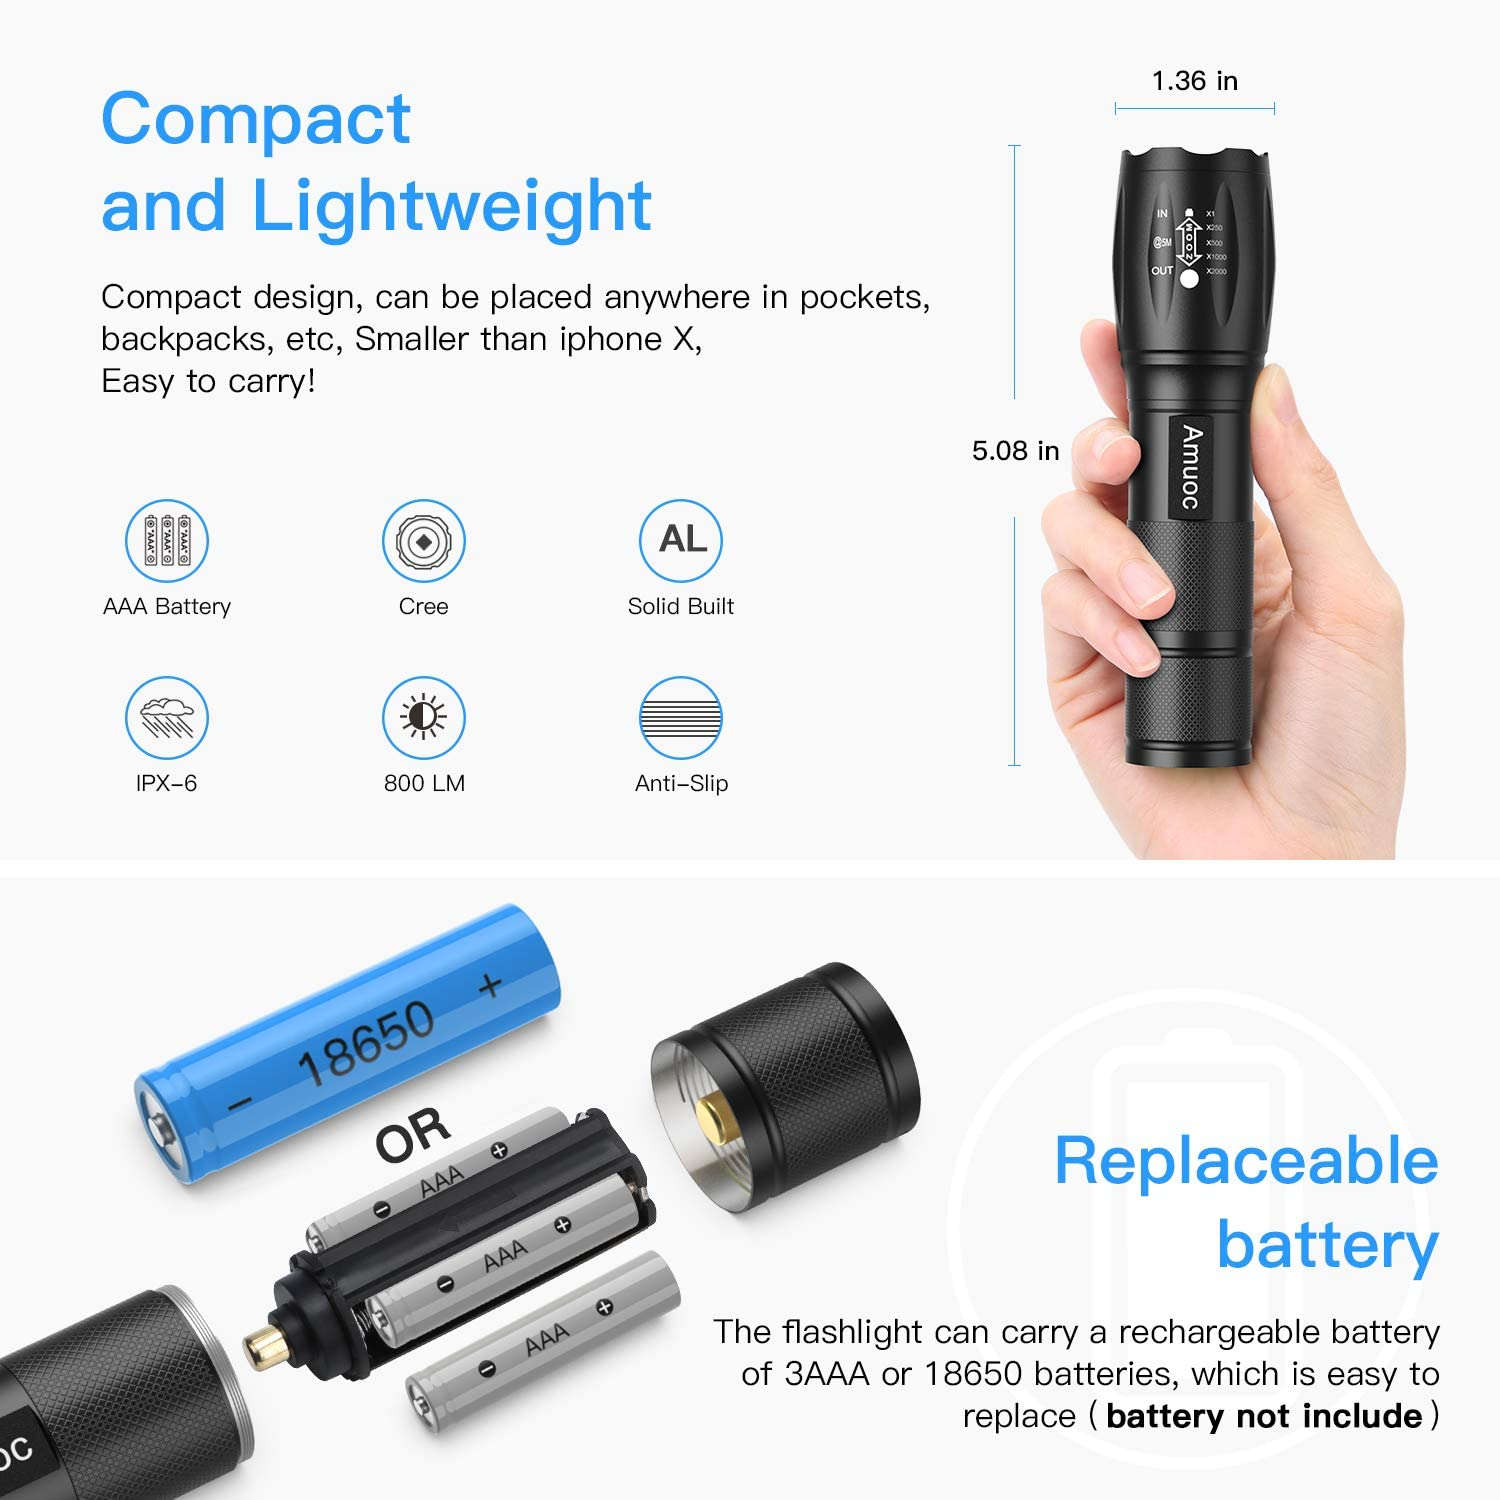 Handheld Light Water Resistant High Lumen 12 Modes Flashlights LED Tactical Flashlight S1000 Zoomable Black Batteries Not Included Best Camping//Outdoor//Hiking//Flashlights//Gift-Giving